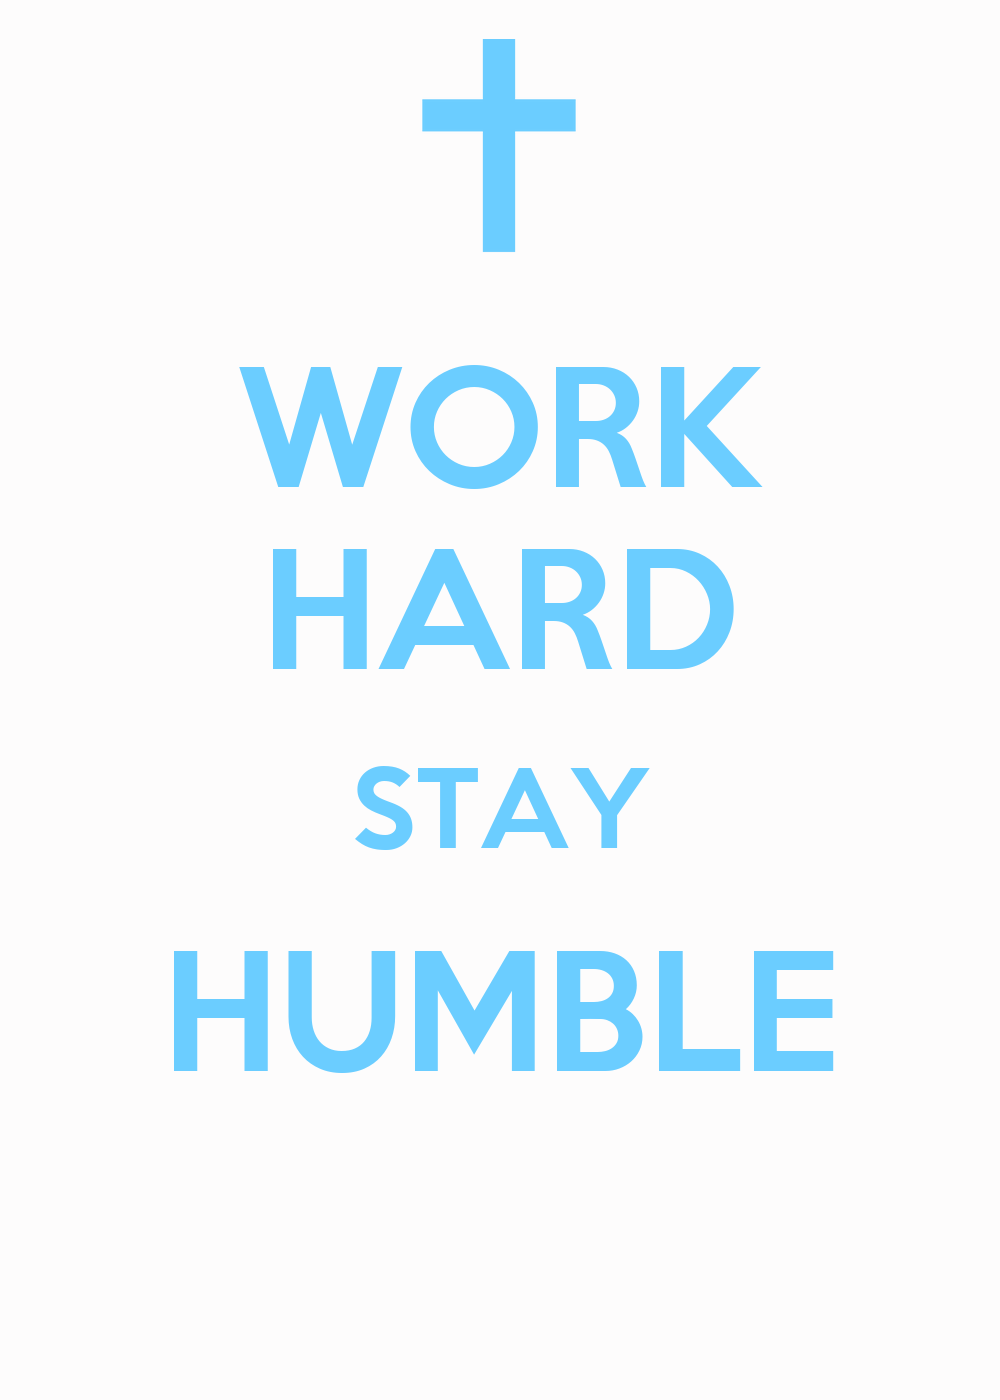 Work hard stay humble keep calm and carry on image generator - Stay humble wallpaper ...